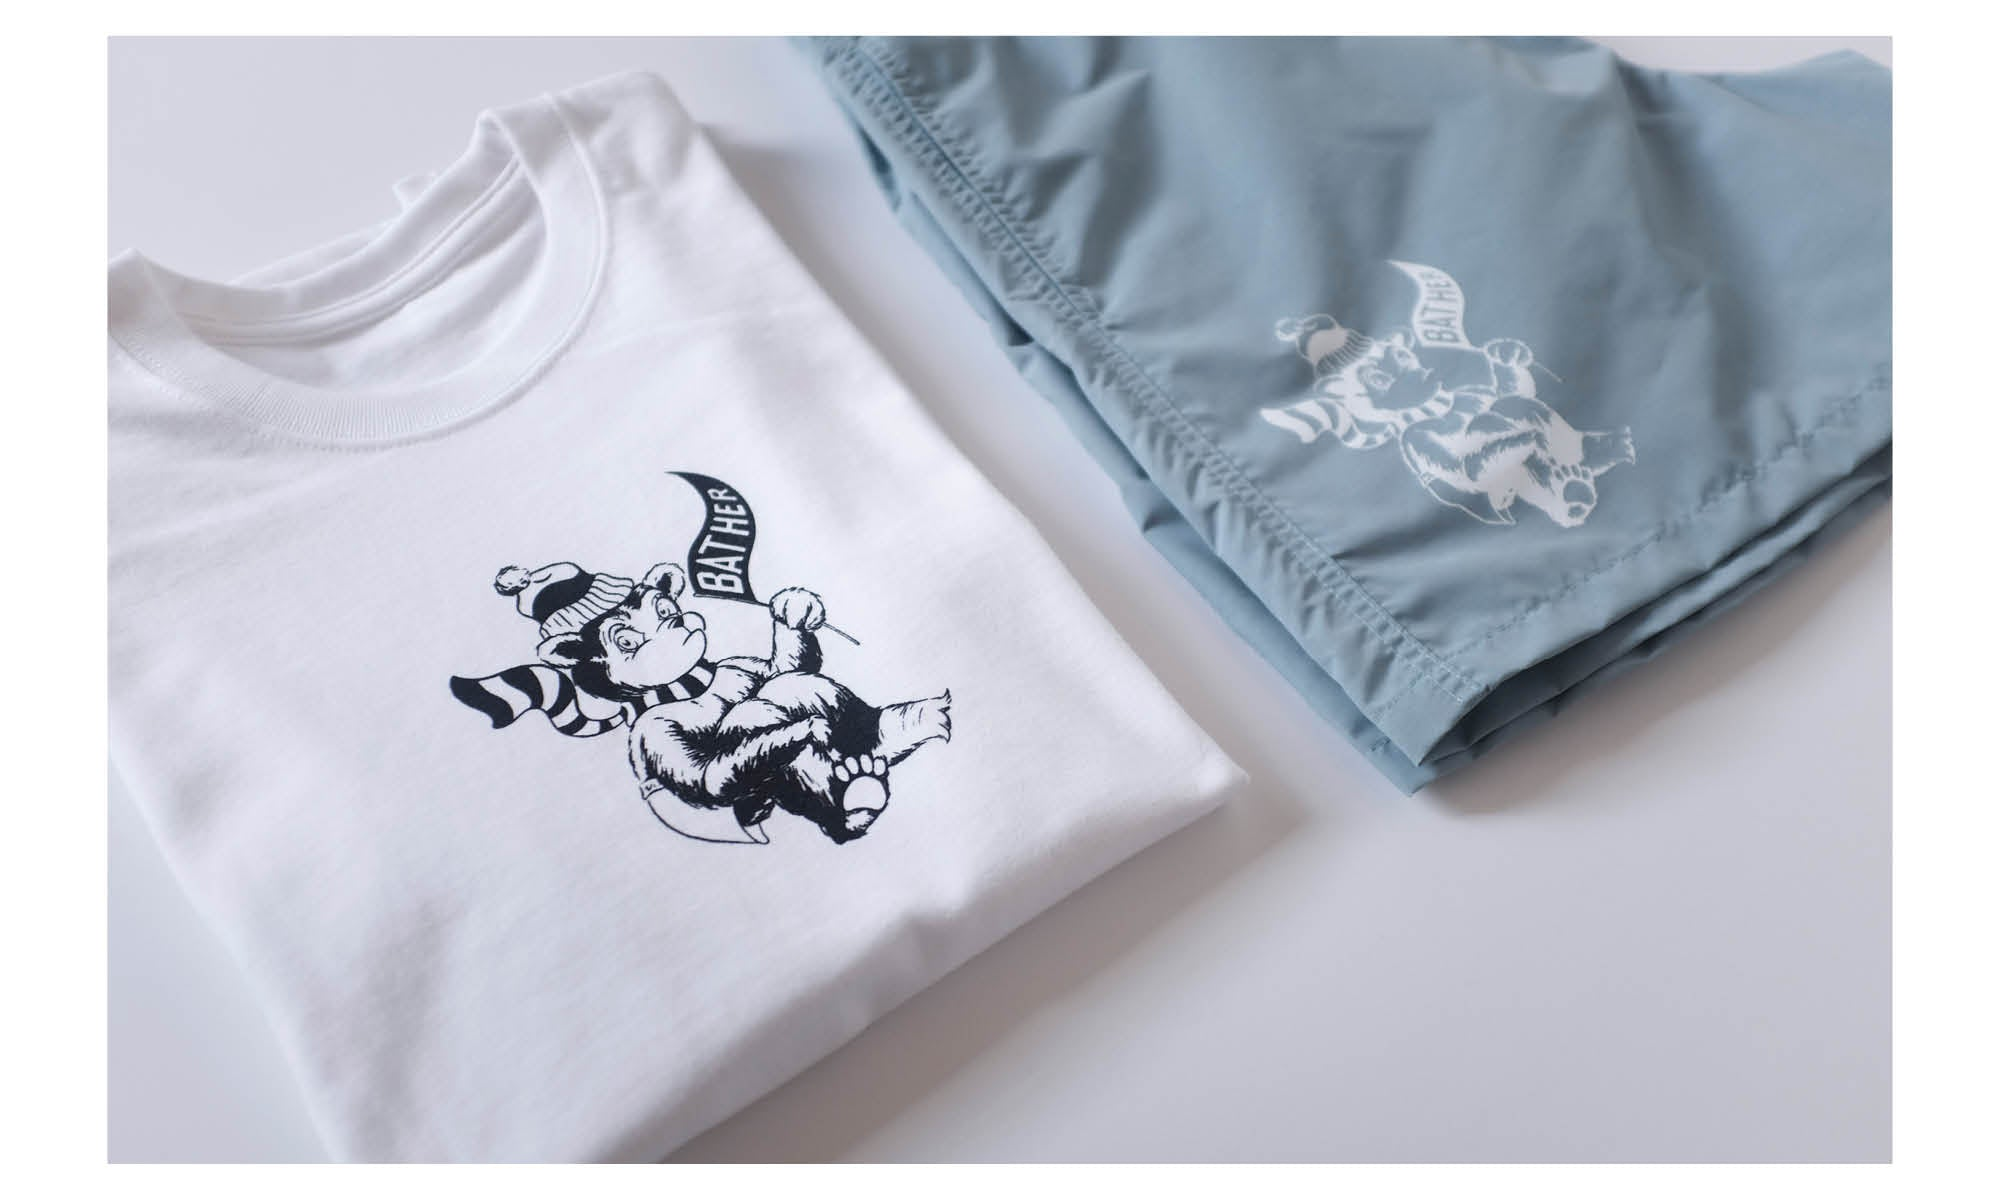 Bather t-shirt and swim trunks with swimming polar bear